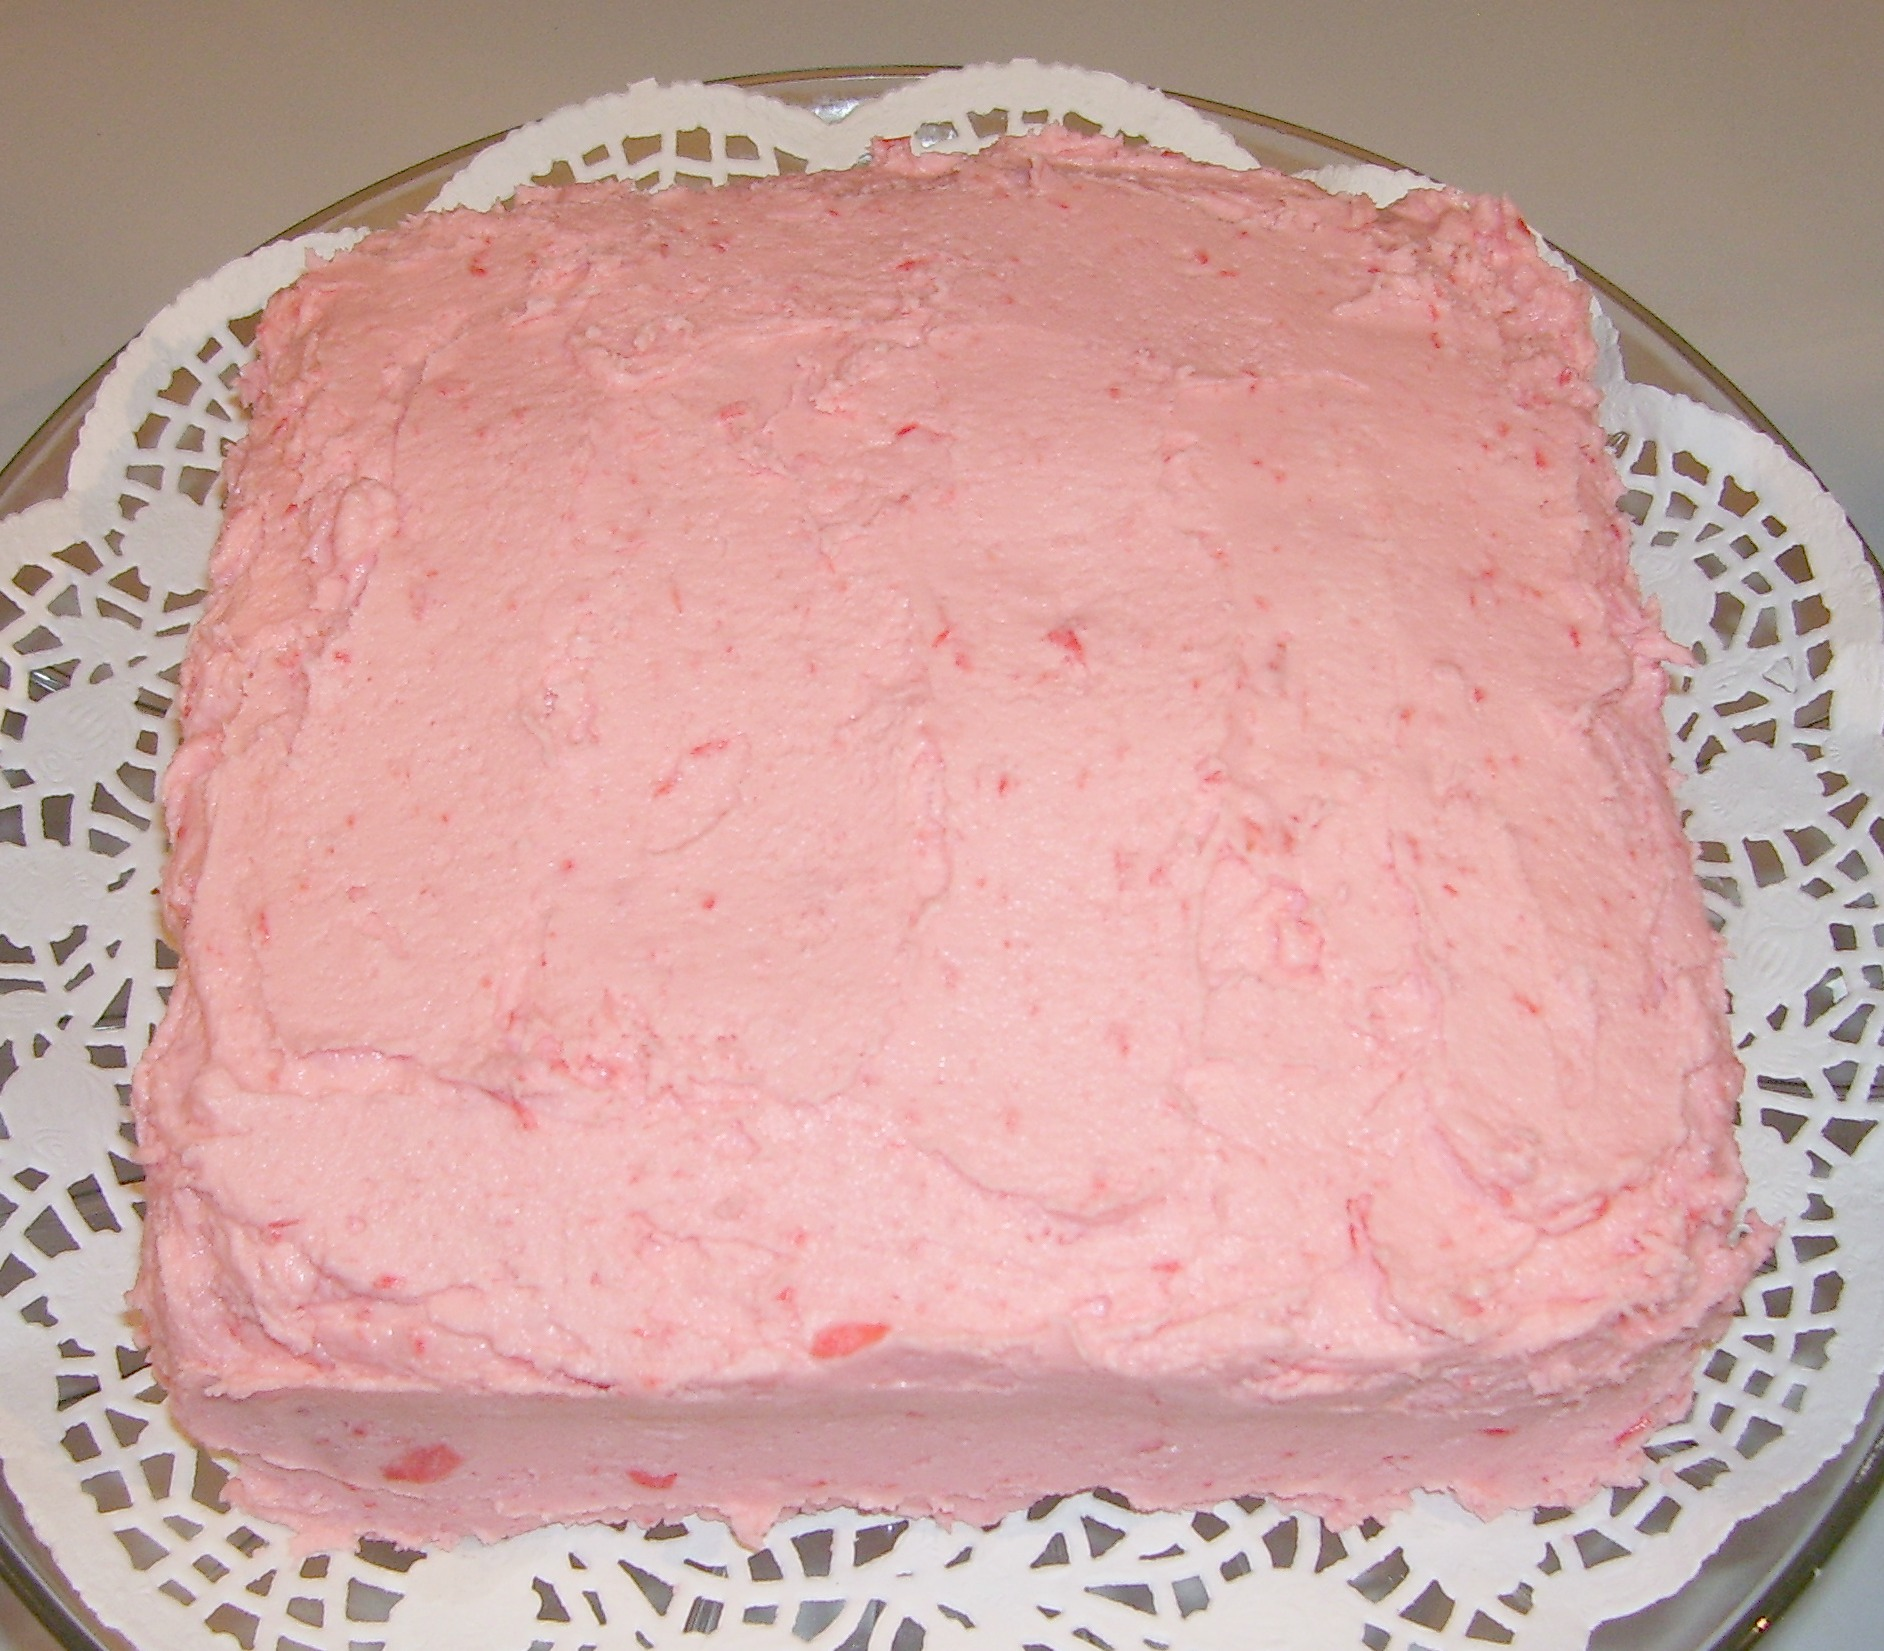 Maraschino Cherry Cake Recipe from scratch with luscious Maraschino Cream Cheese Frosting.